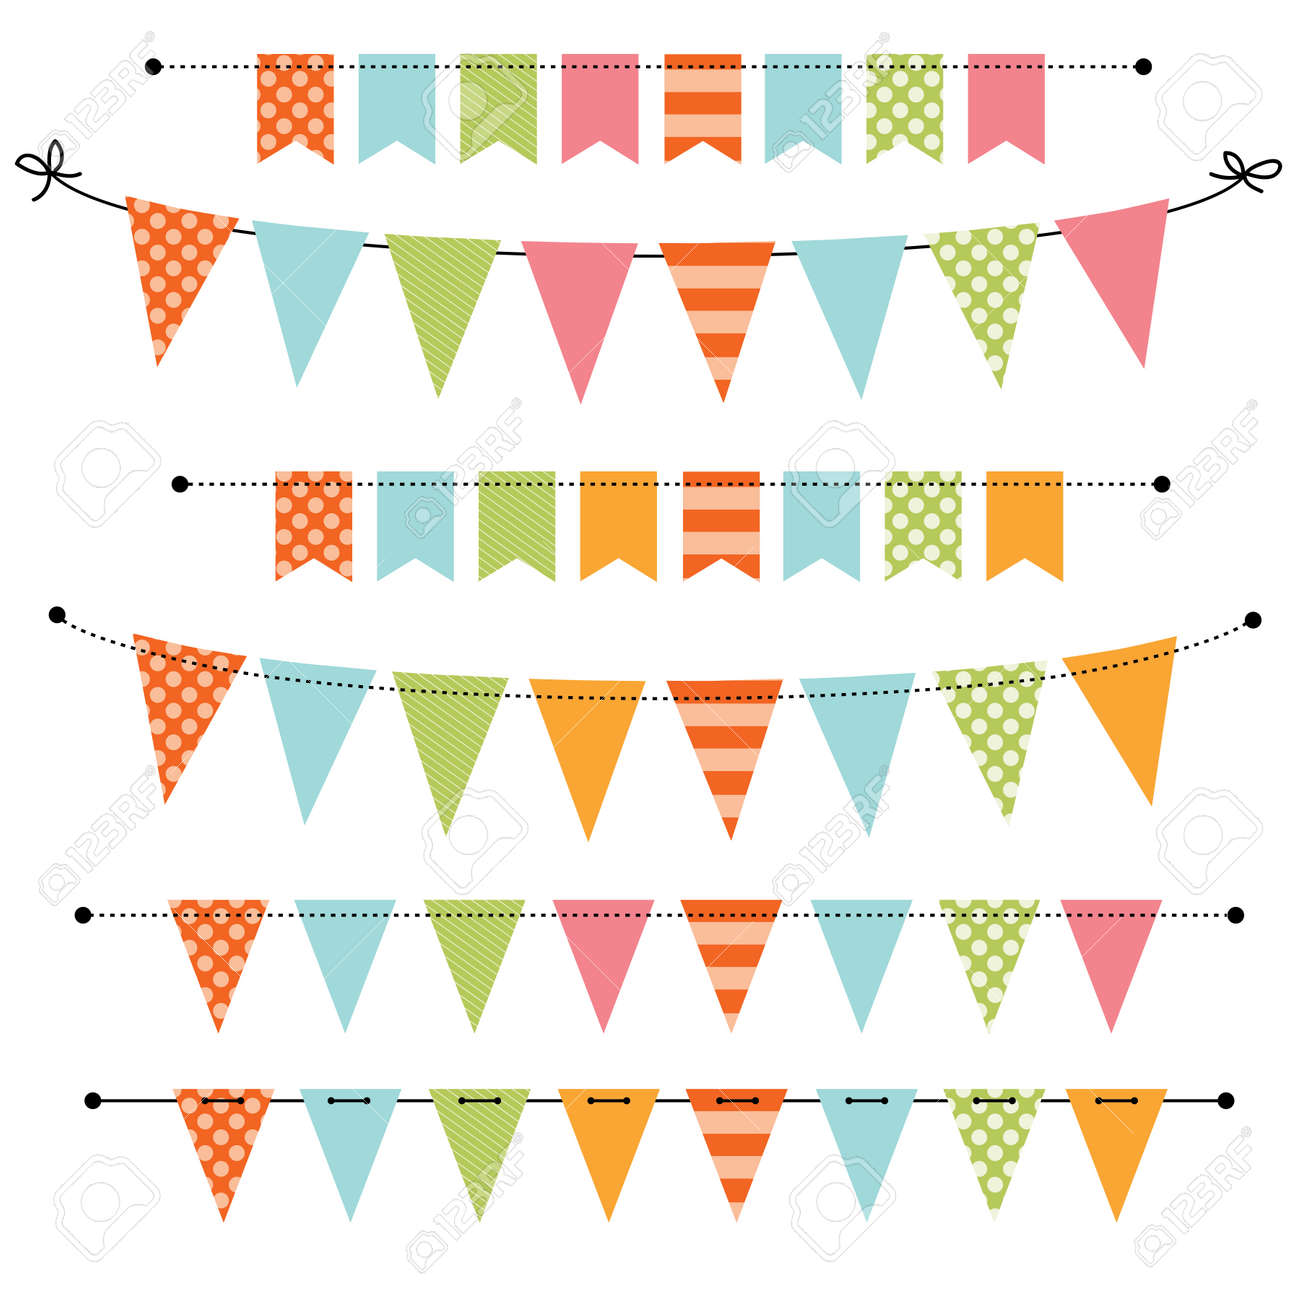 blank banner bunting or swag templates for scrapbooking parties